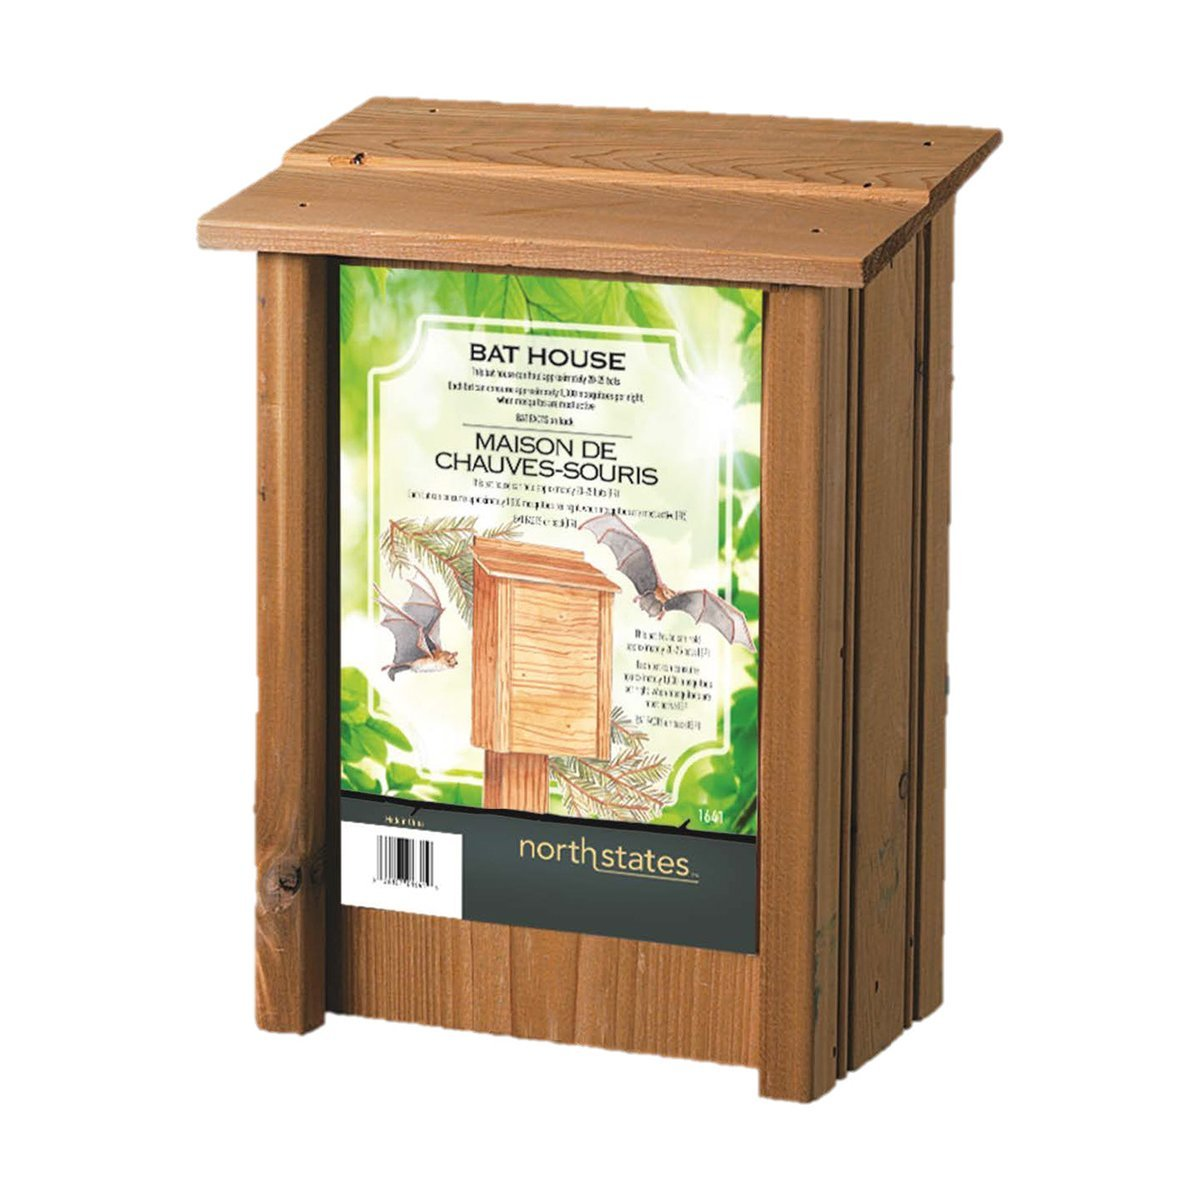 North States 1641 8-Inch by 4-3/4-Inch by 15-Inch Bat House North States Industries